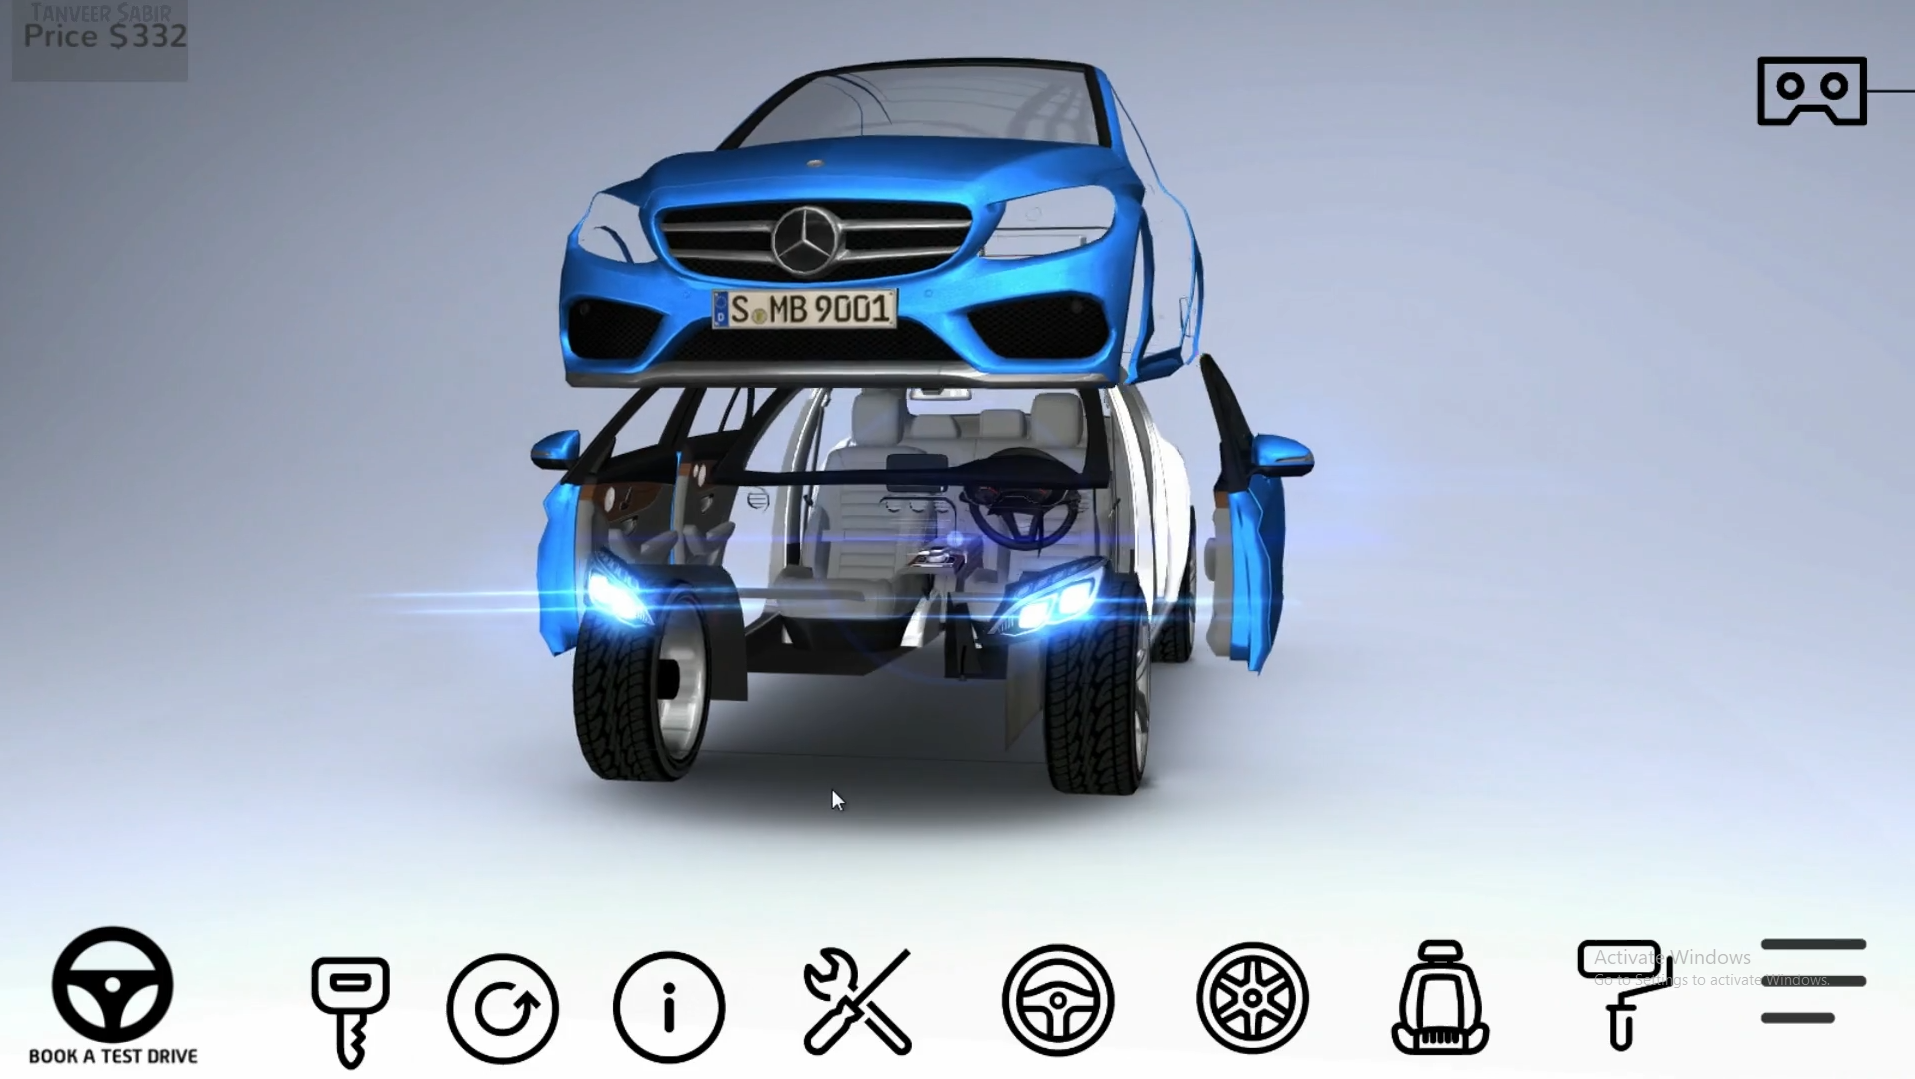 Car configurator - Mobile Device